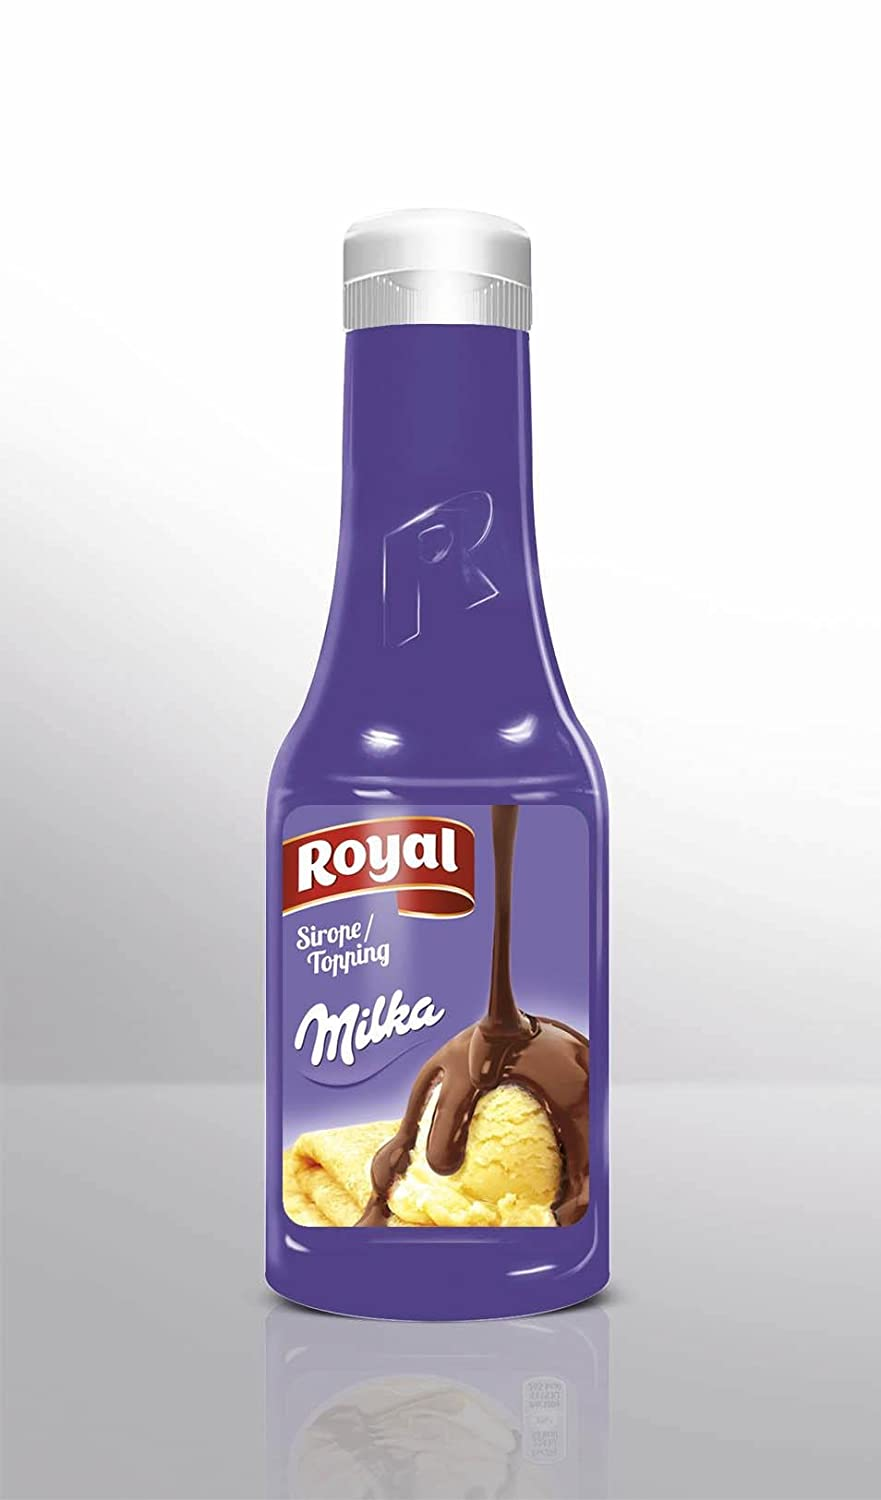 MILKA Royal sirope de chocolate milka botella 300 gr: Amazon.es: Alimentación y bebidas